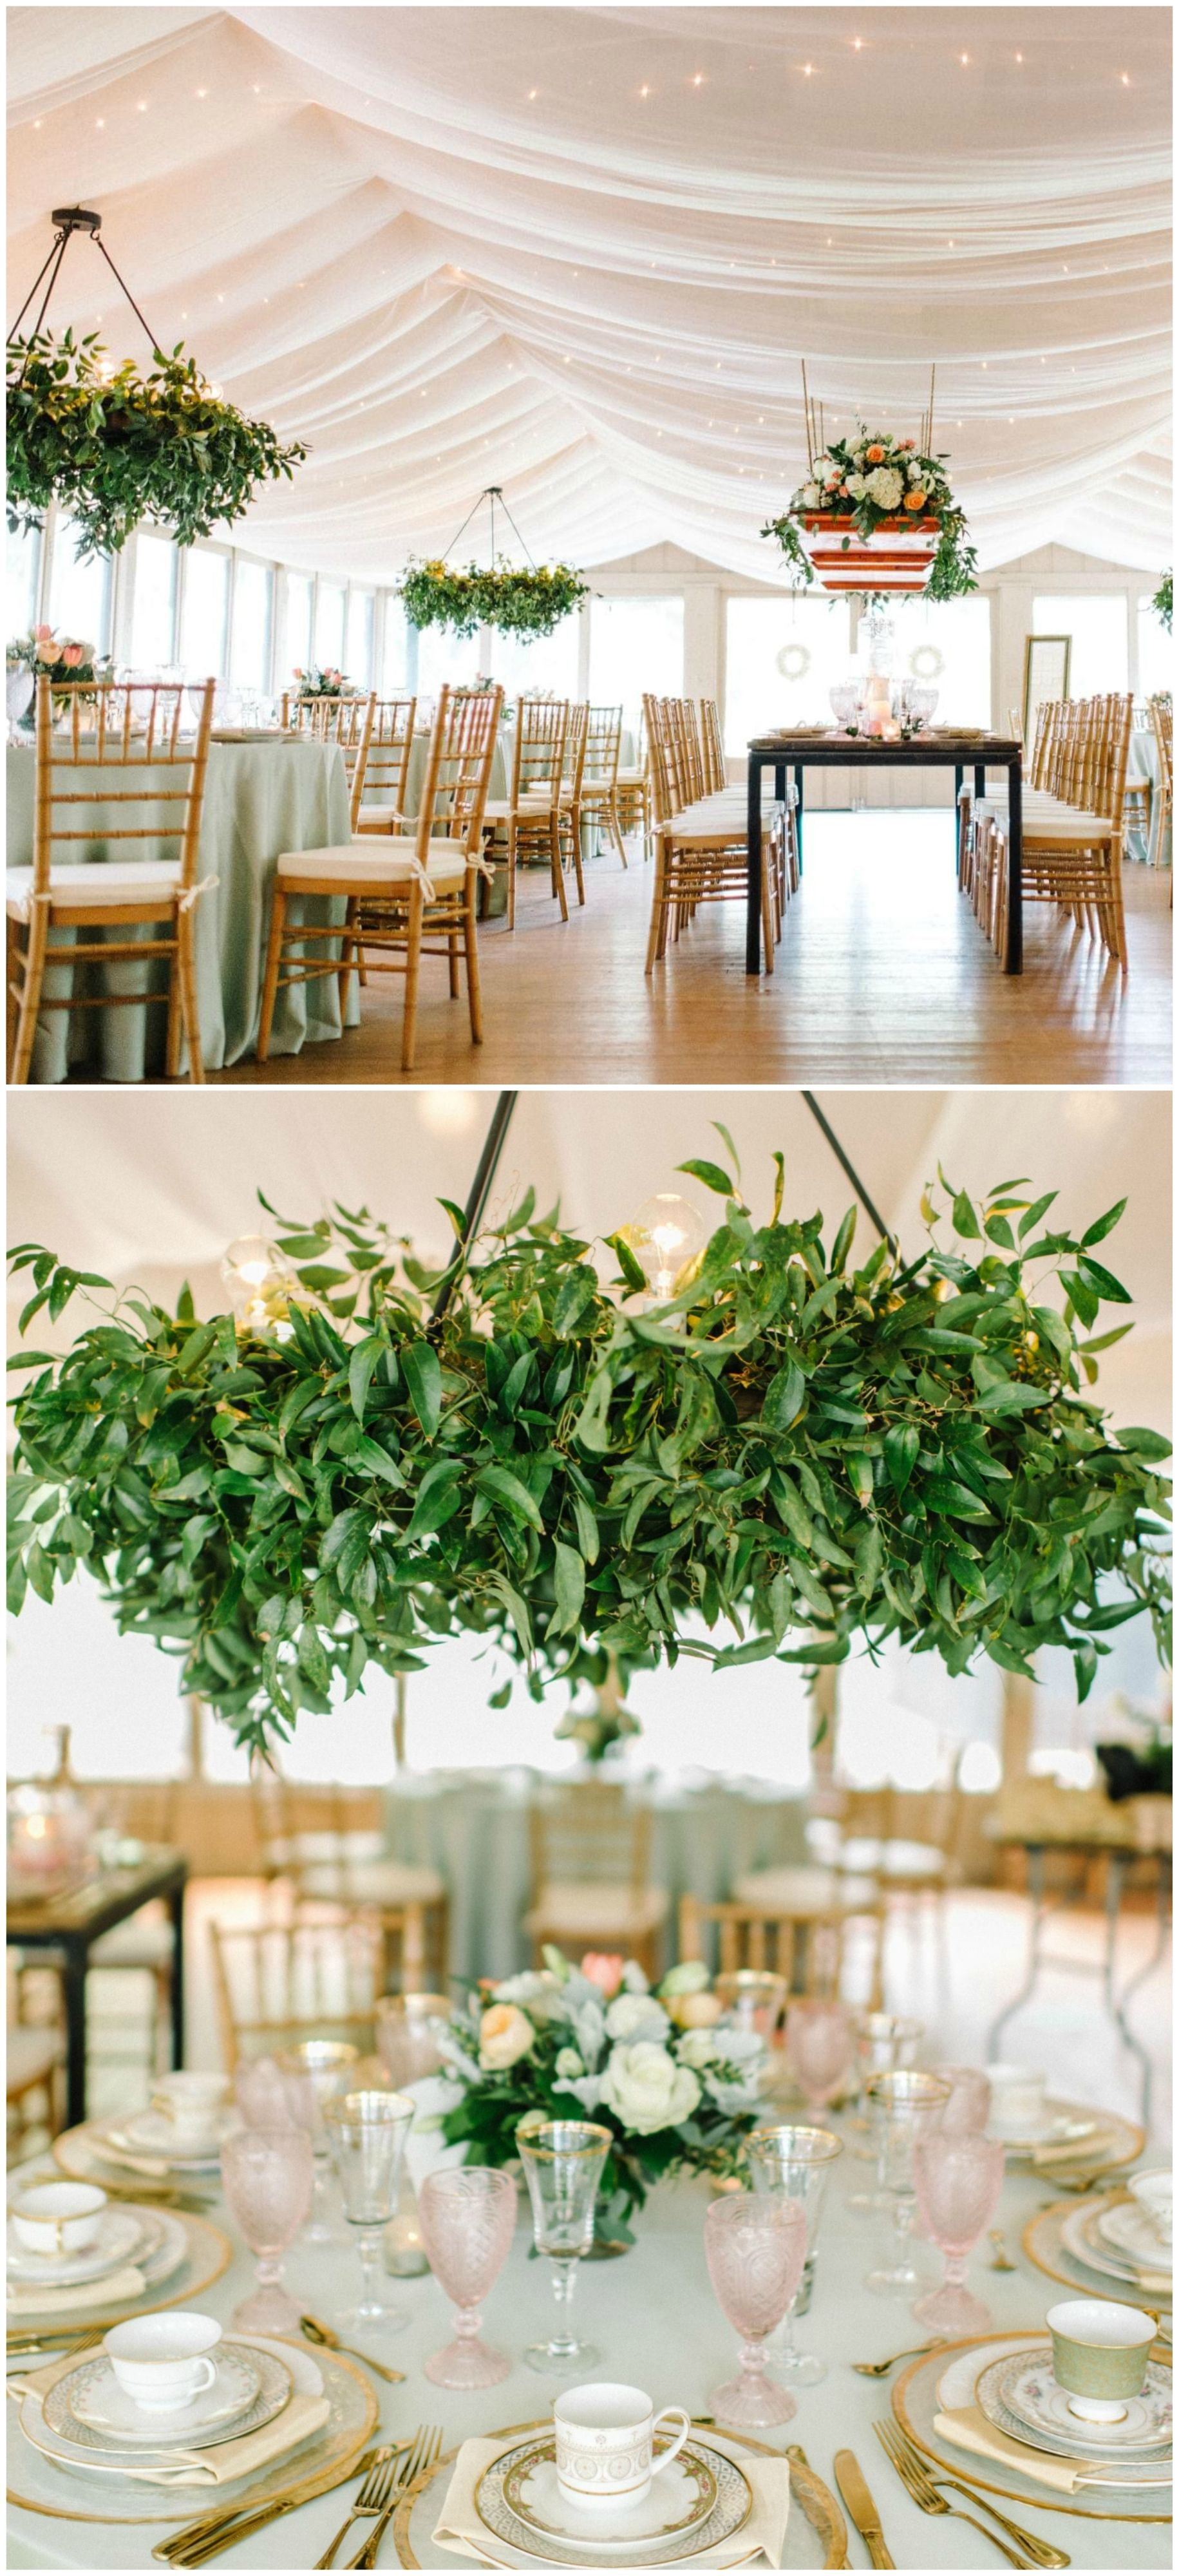 The Smarter Way To Wed Wedding Reception Ideas Pinterest